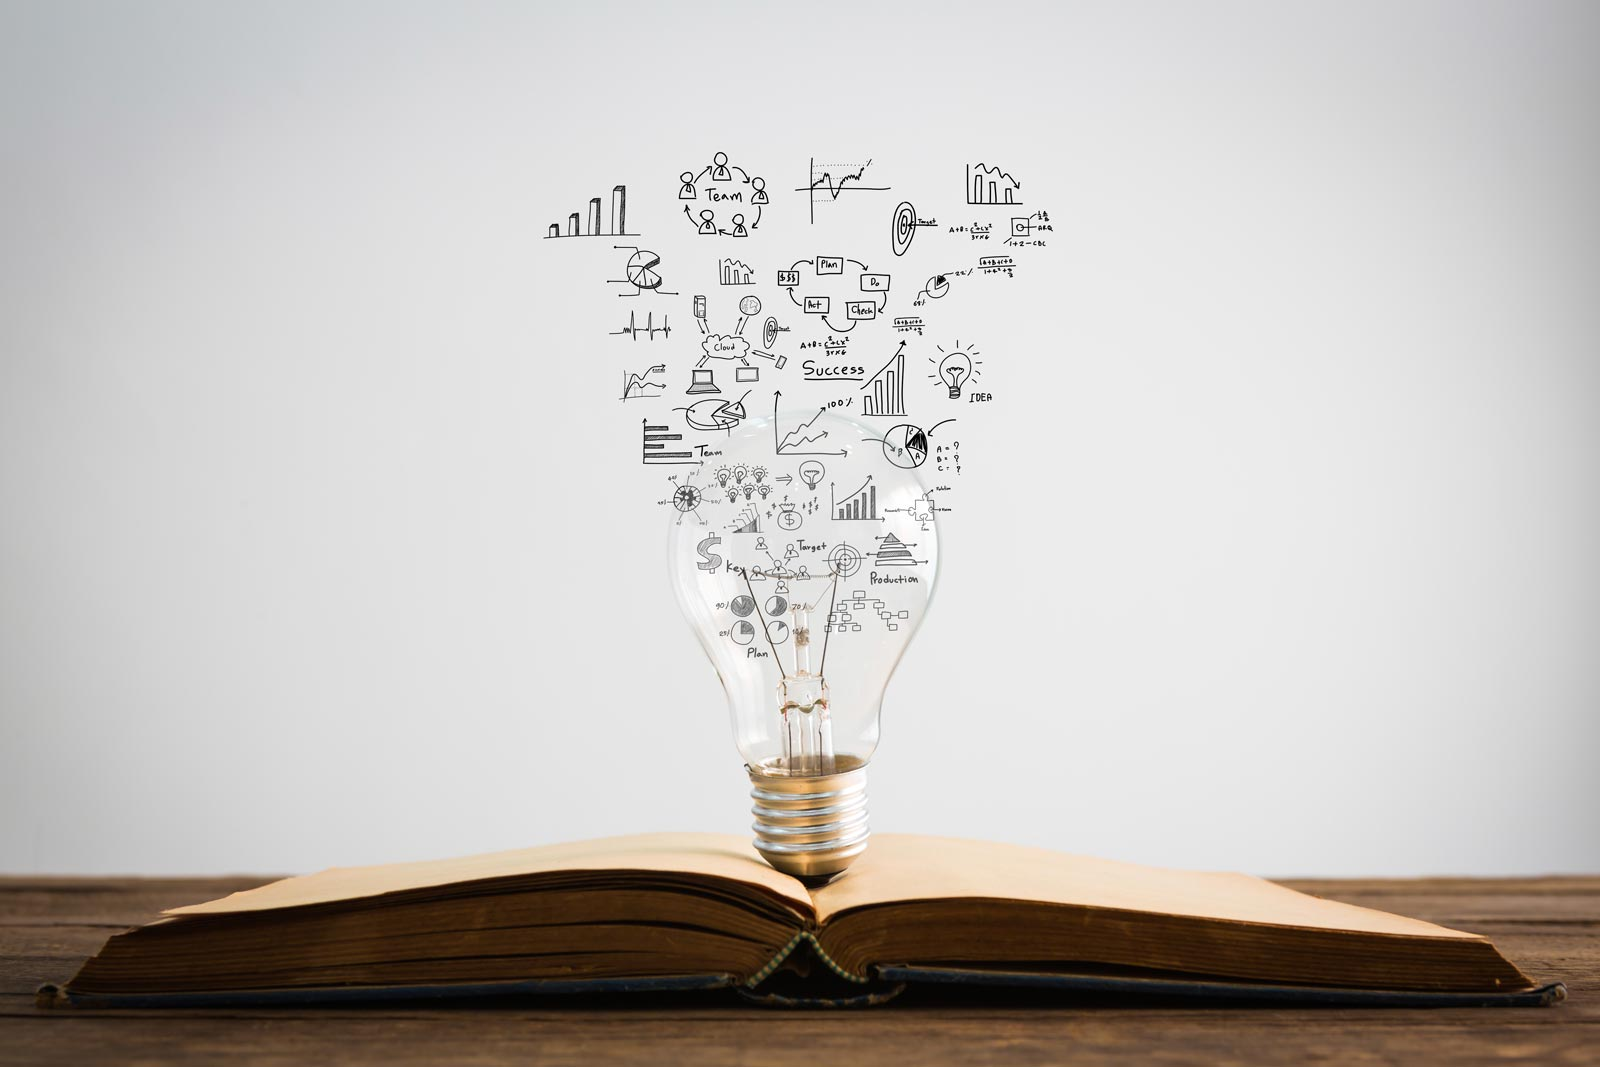 Symbols come out of a bulb on top of a book